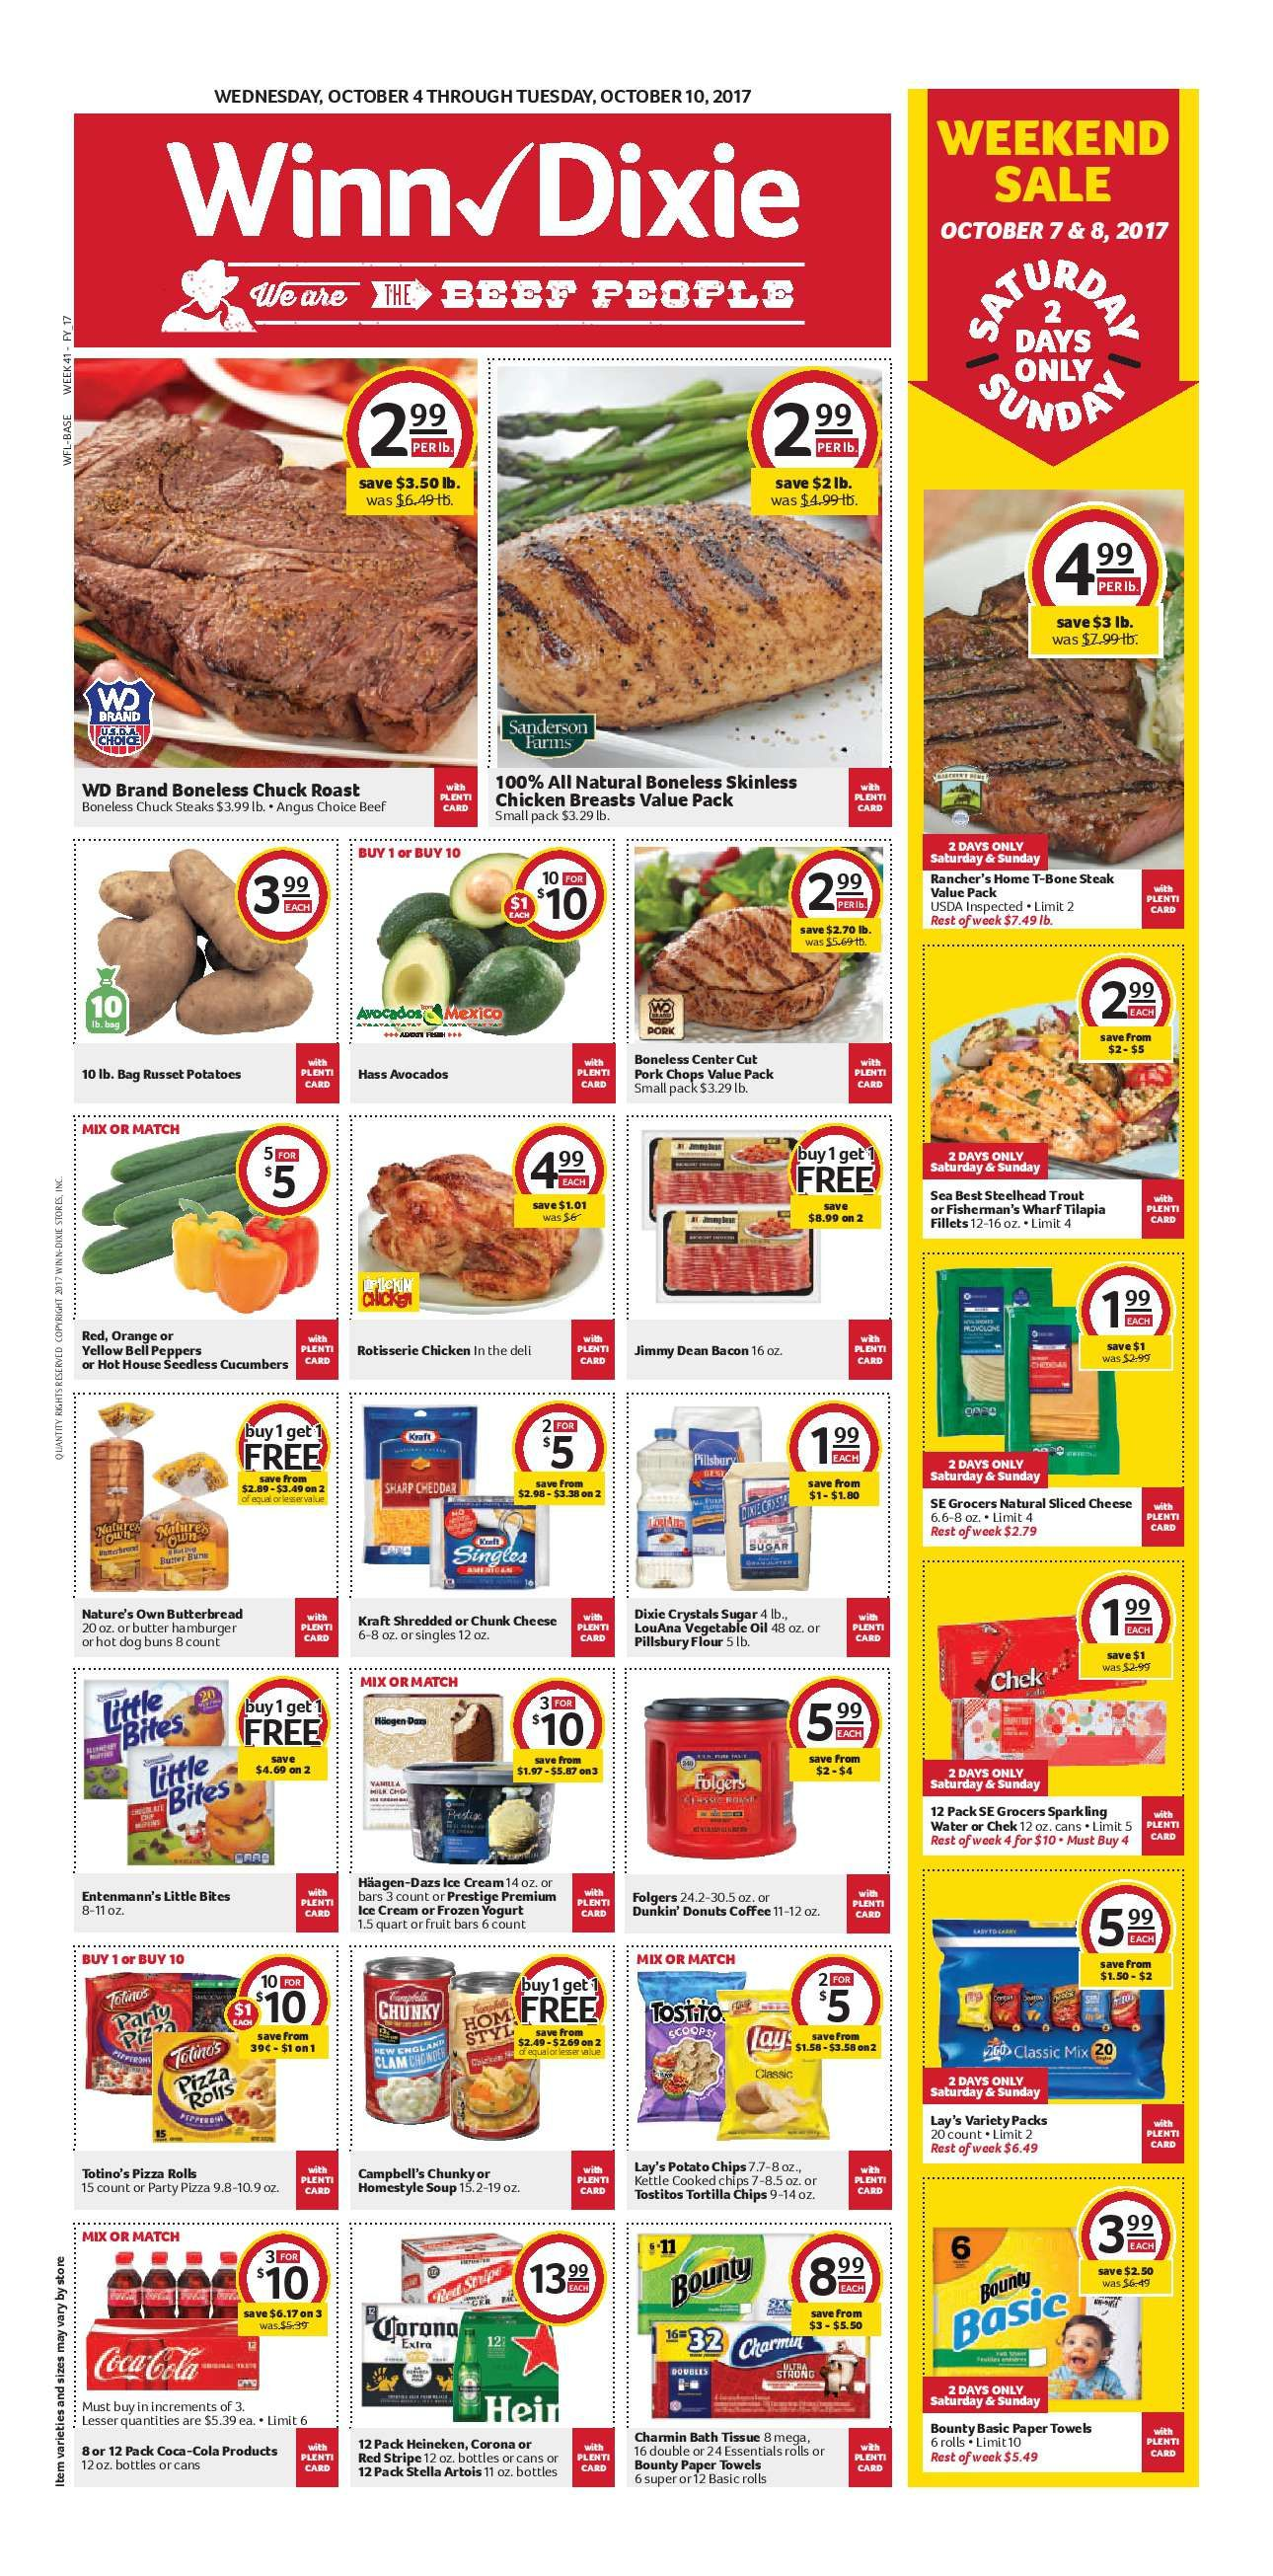 Winn Dixie Weekly Ad October 4 10 2017 httpwwwolcatalogcom